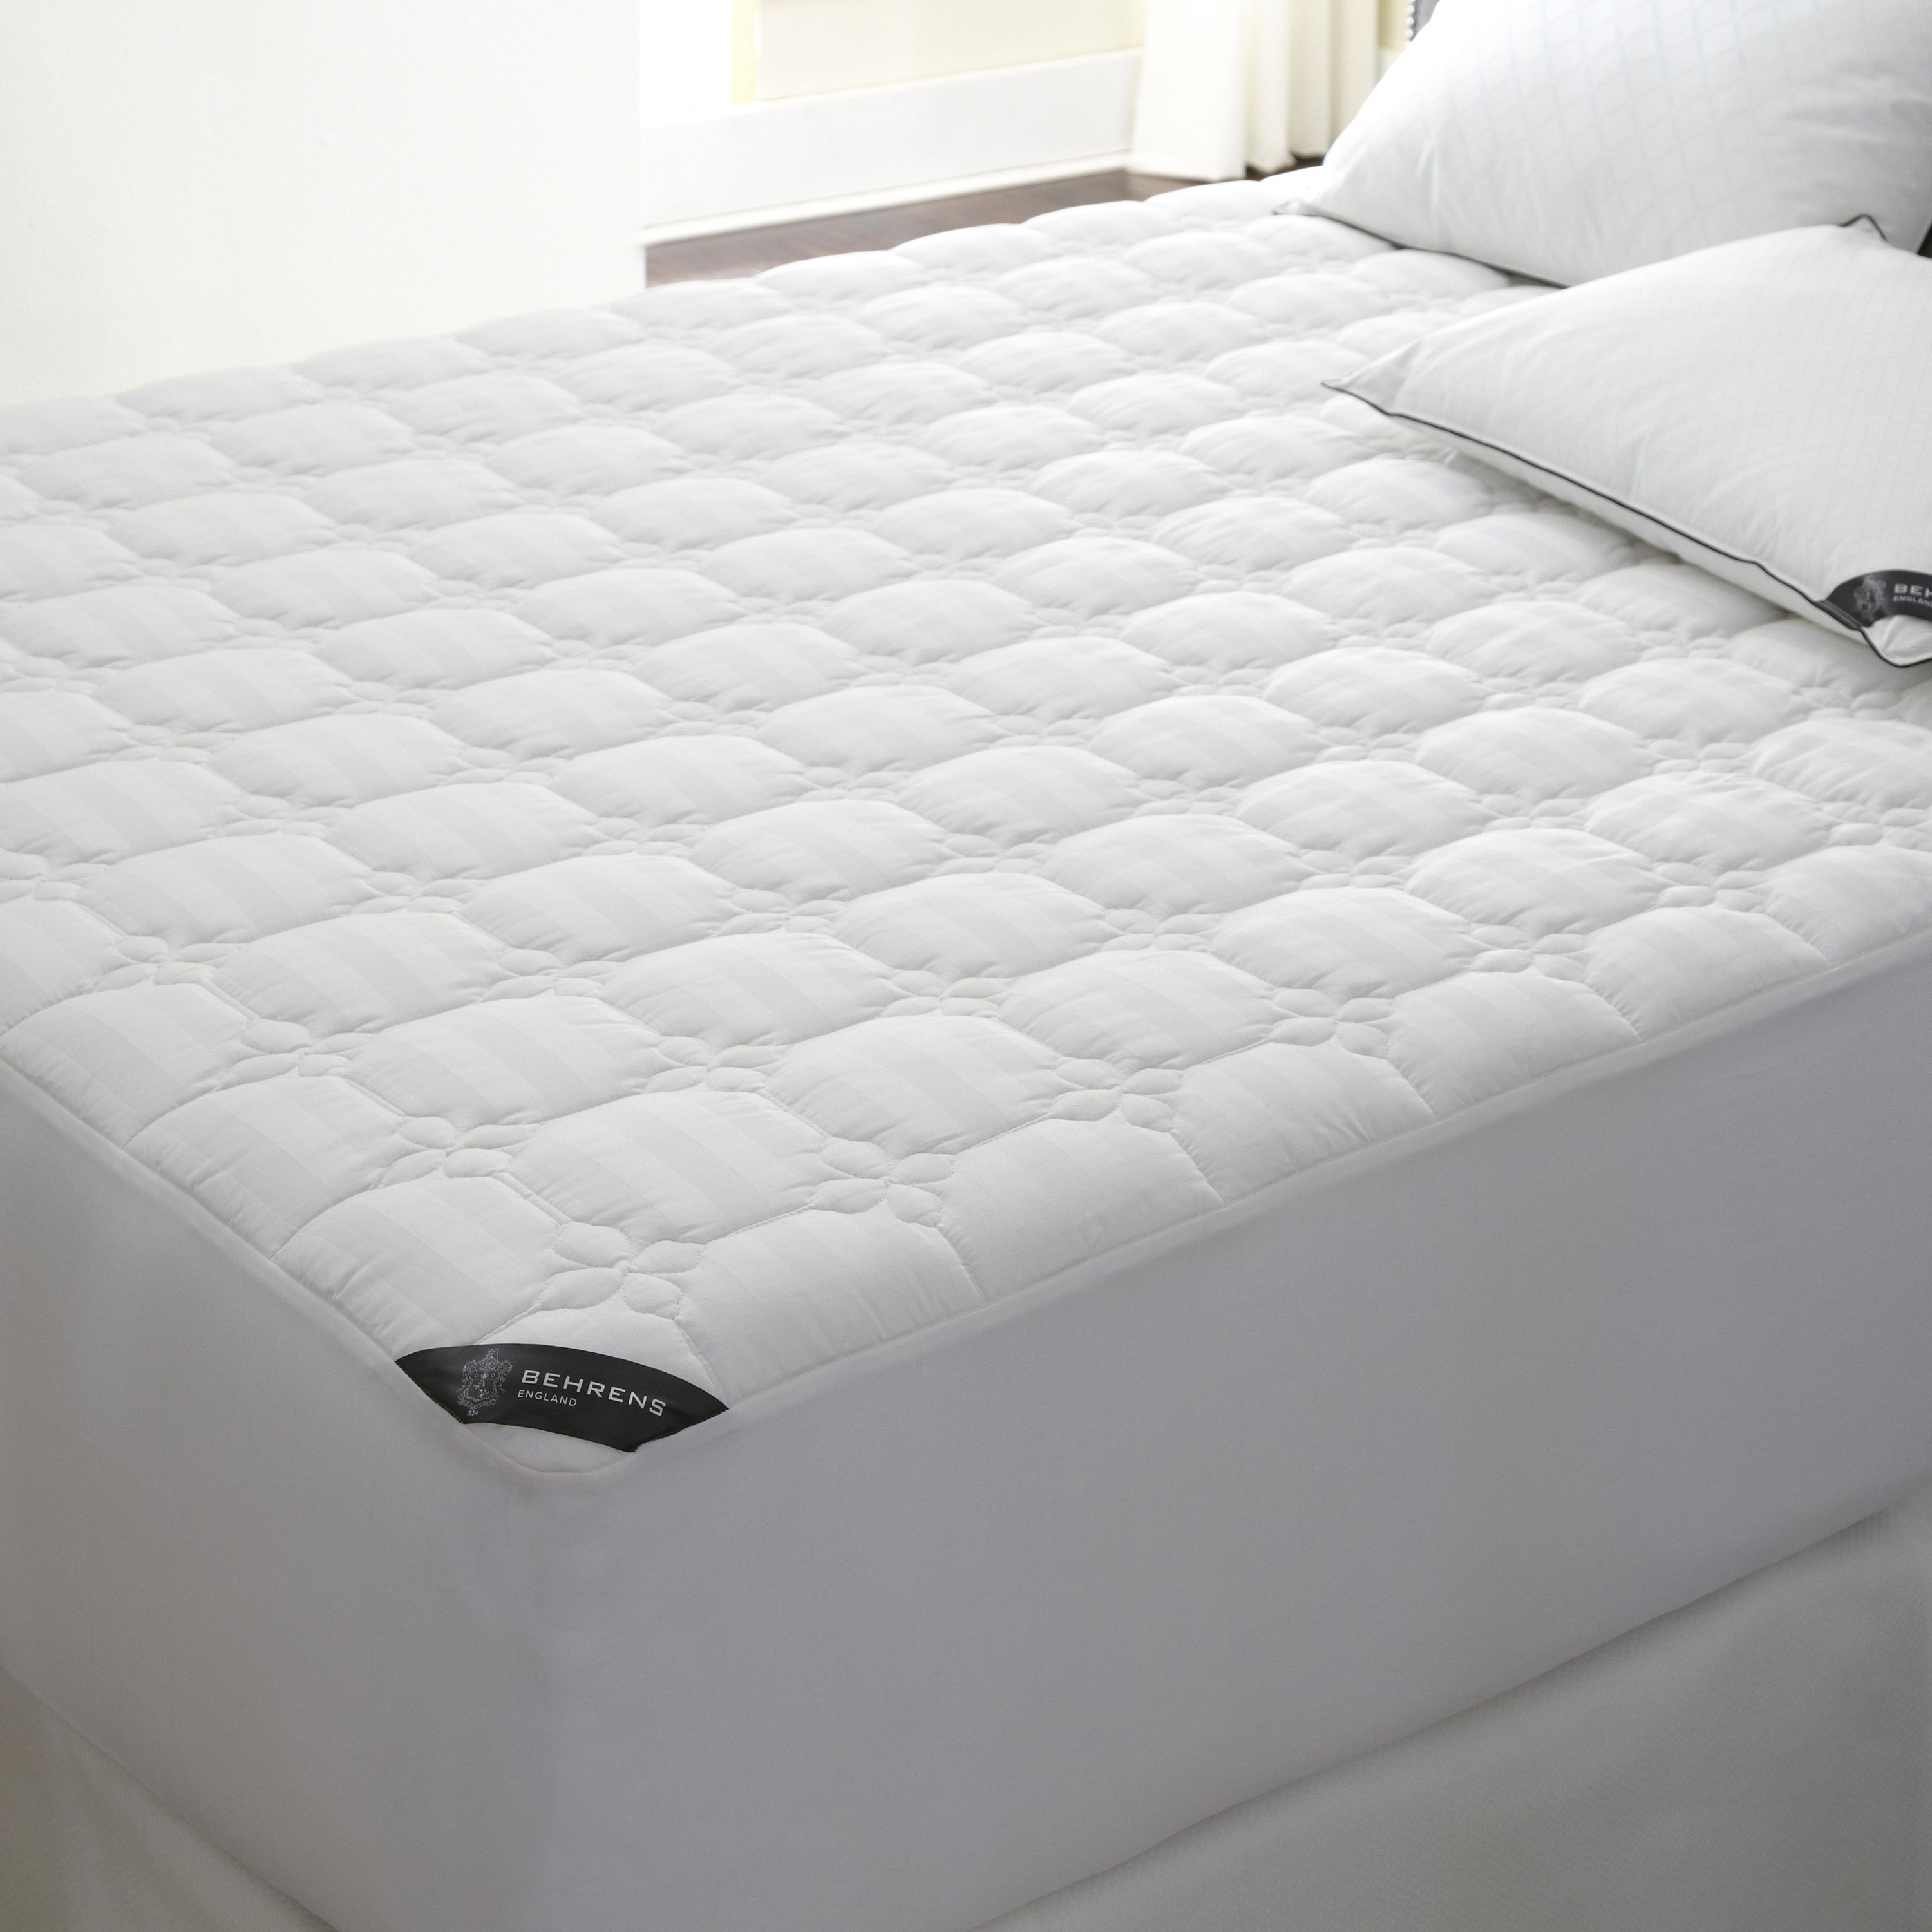 Waterproof Mattress Pad 500 Thread Count Full Protection